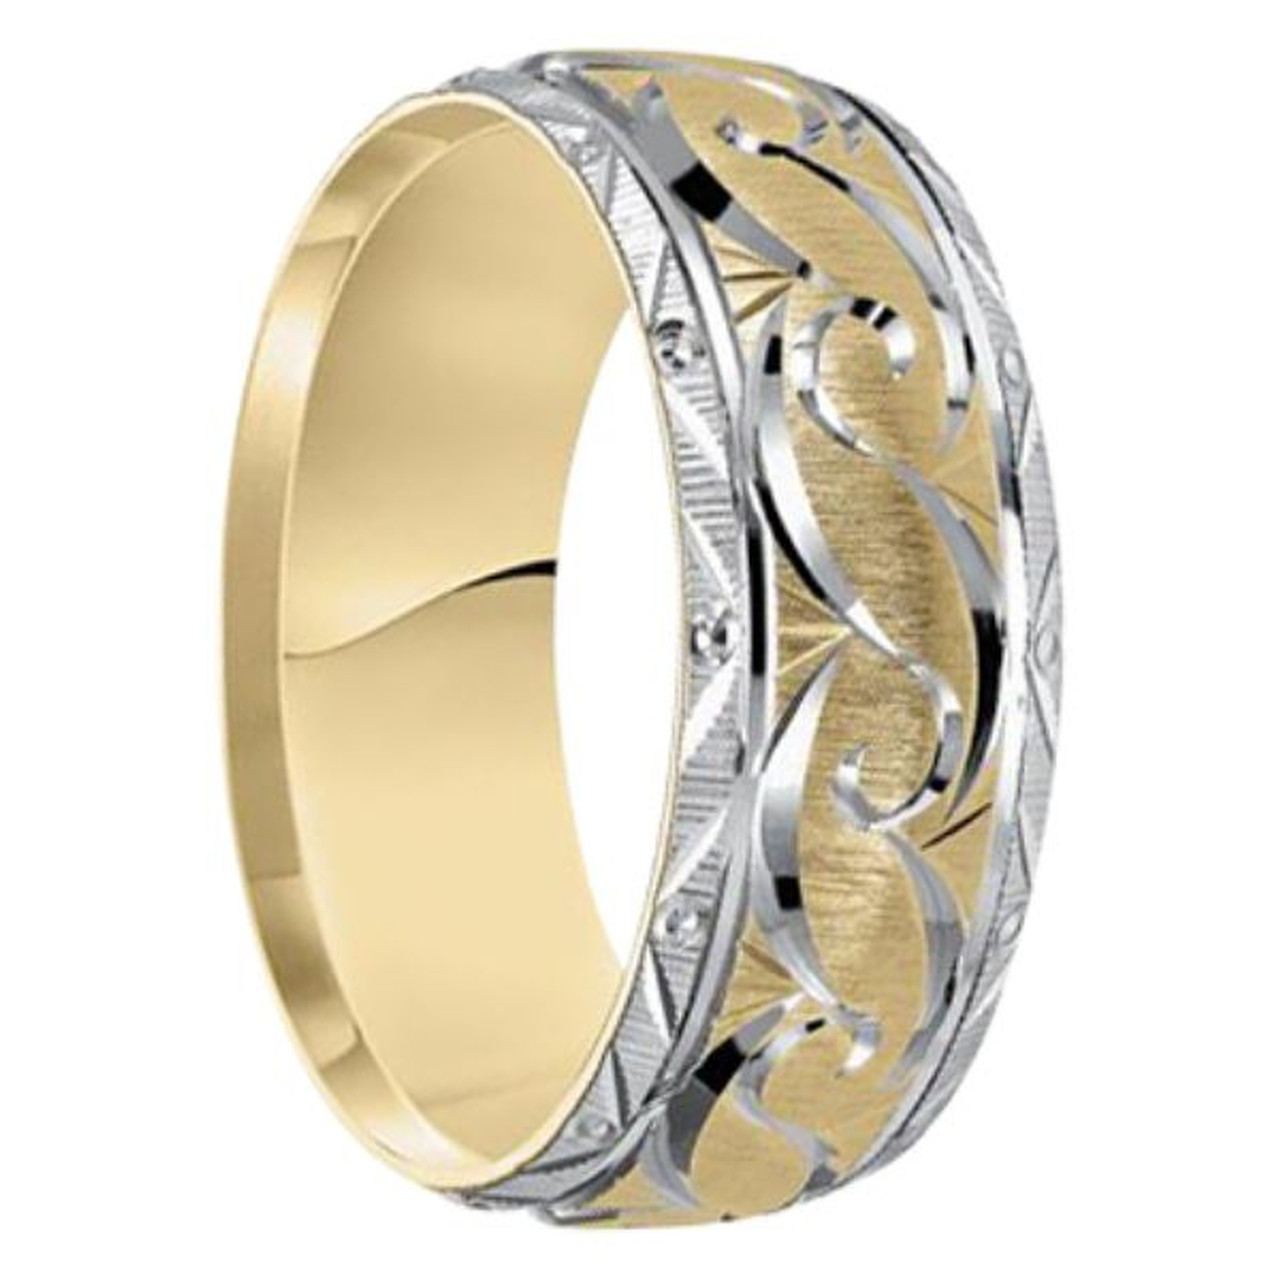 It is just a photo of 40mm Unique Mens Wedding Bands in 40kt. Two-tone Gold - Arabian